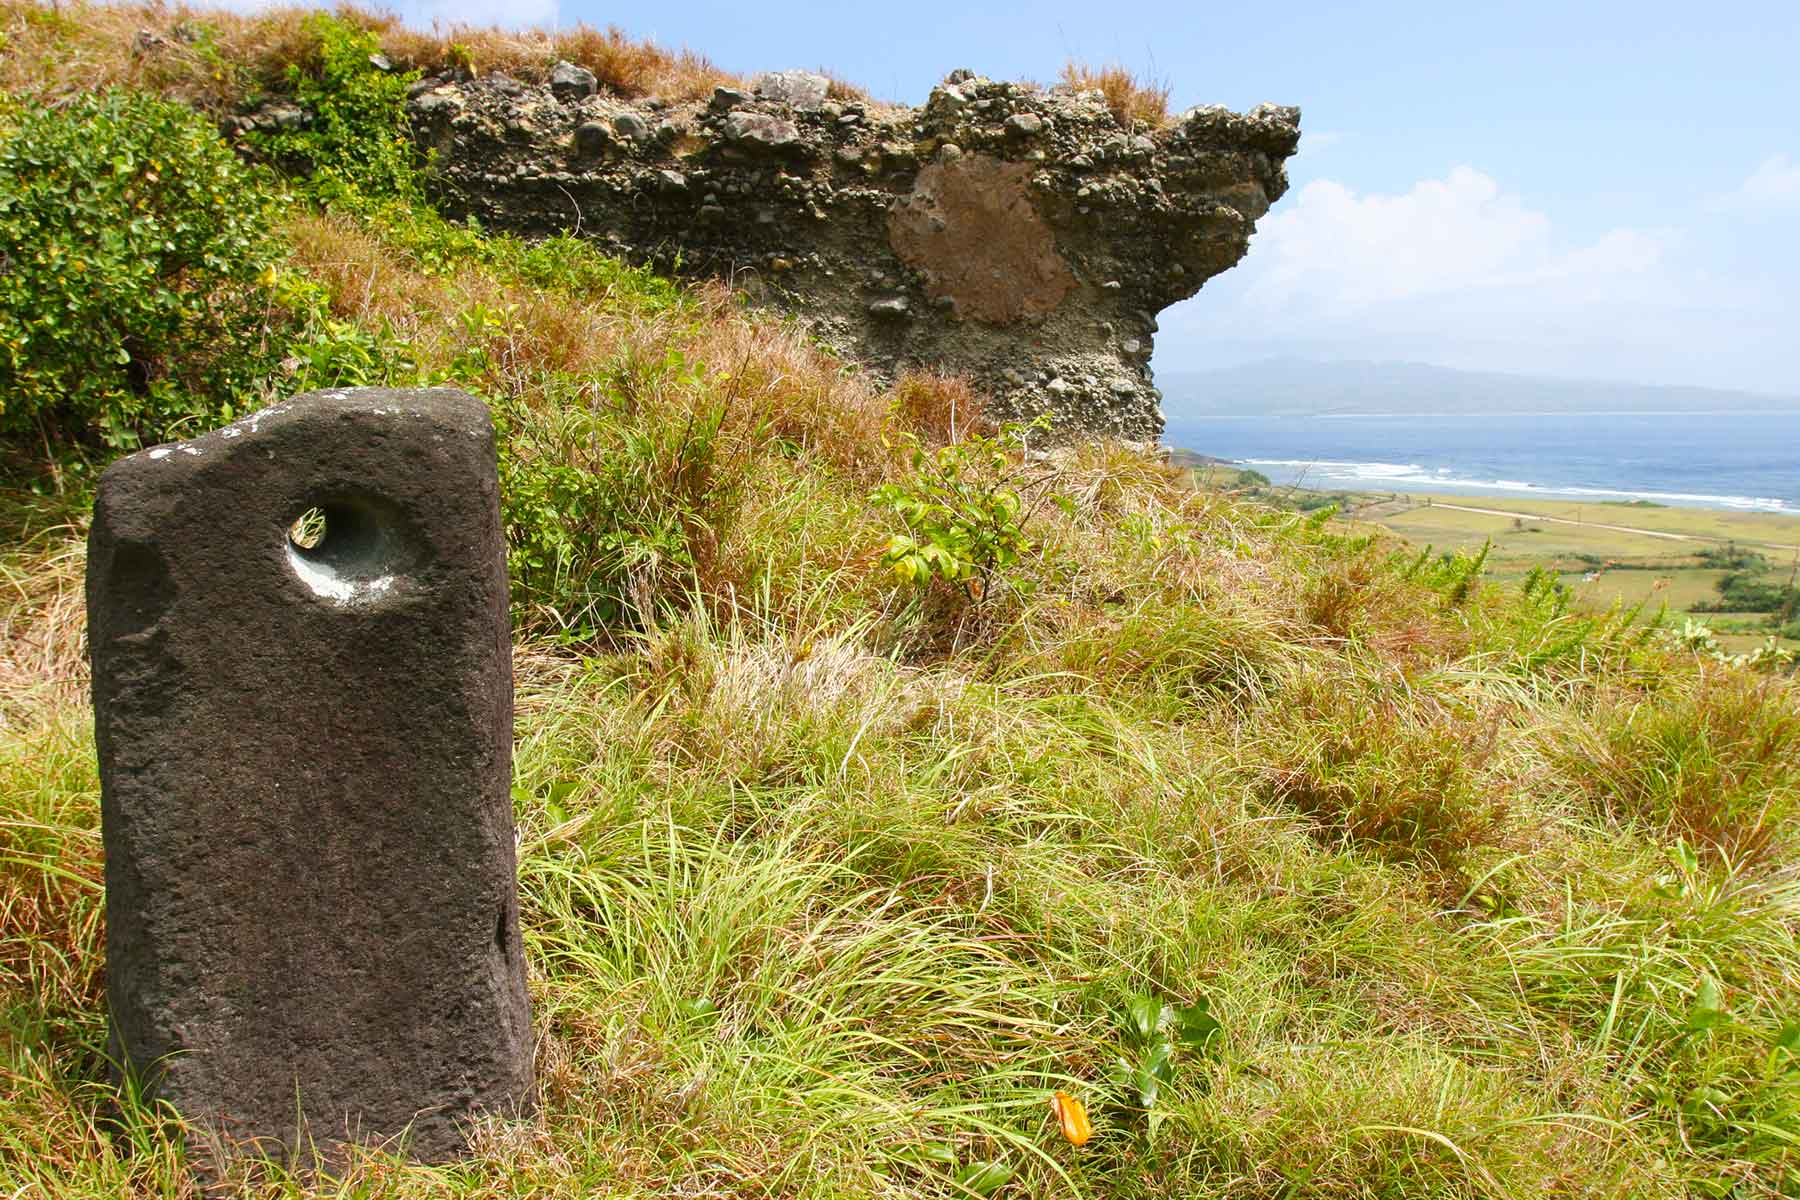 Batanes Philippines - Austronesian Studies - Archaeological Research - Dr Steven Andrew Martin